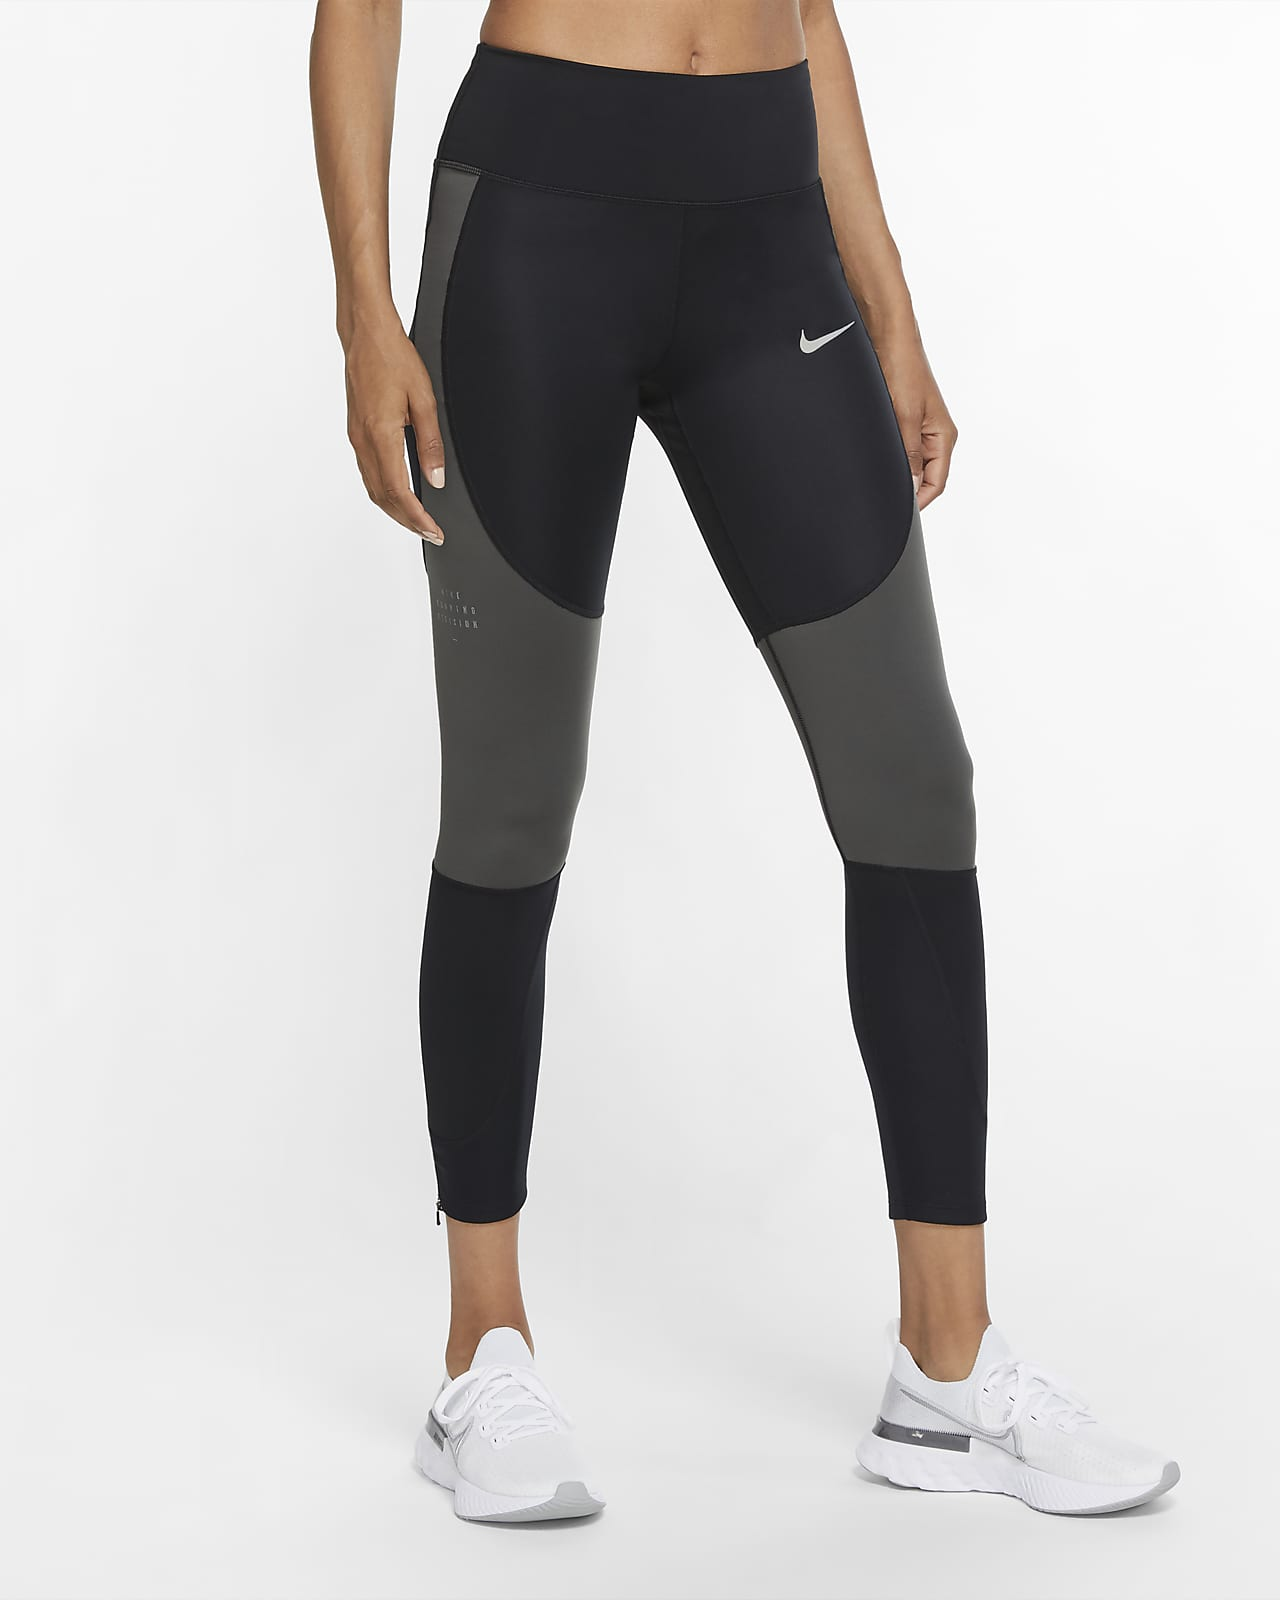 Nike Epic Luxe Run Division Hardlooptights voor dames